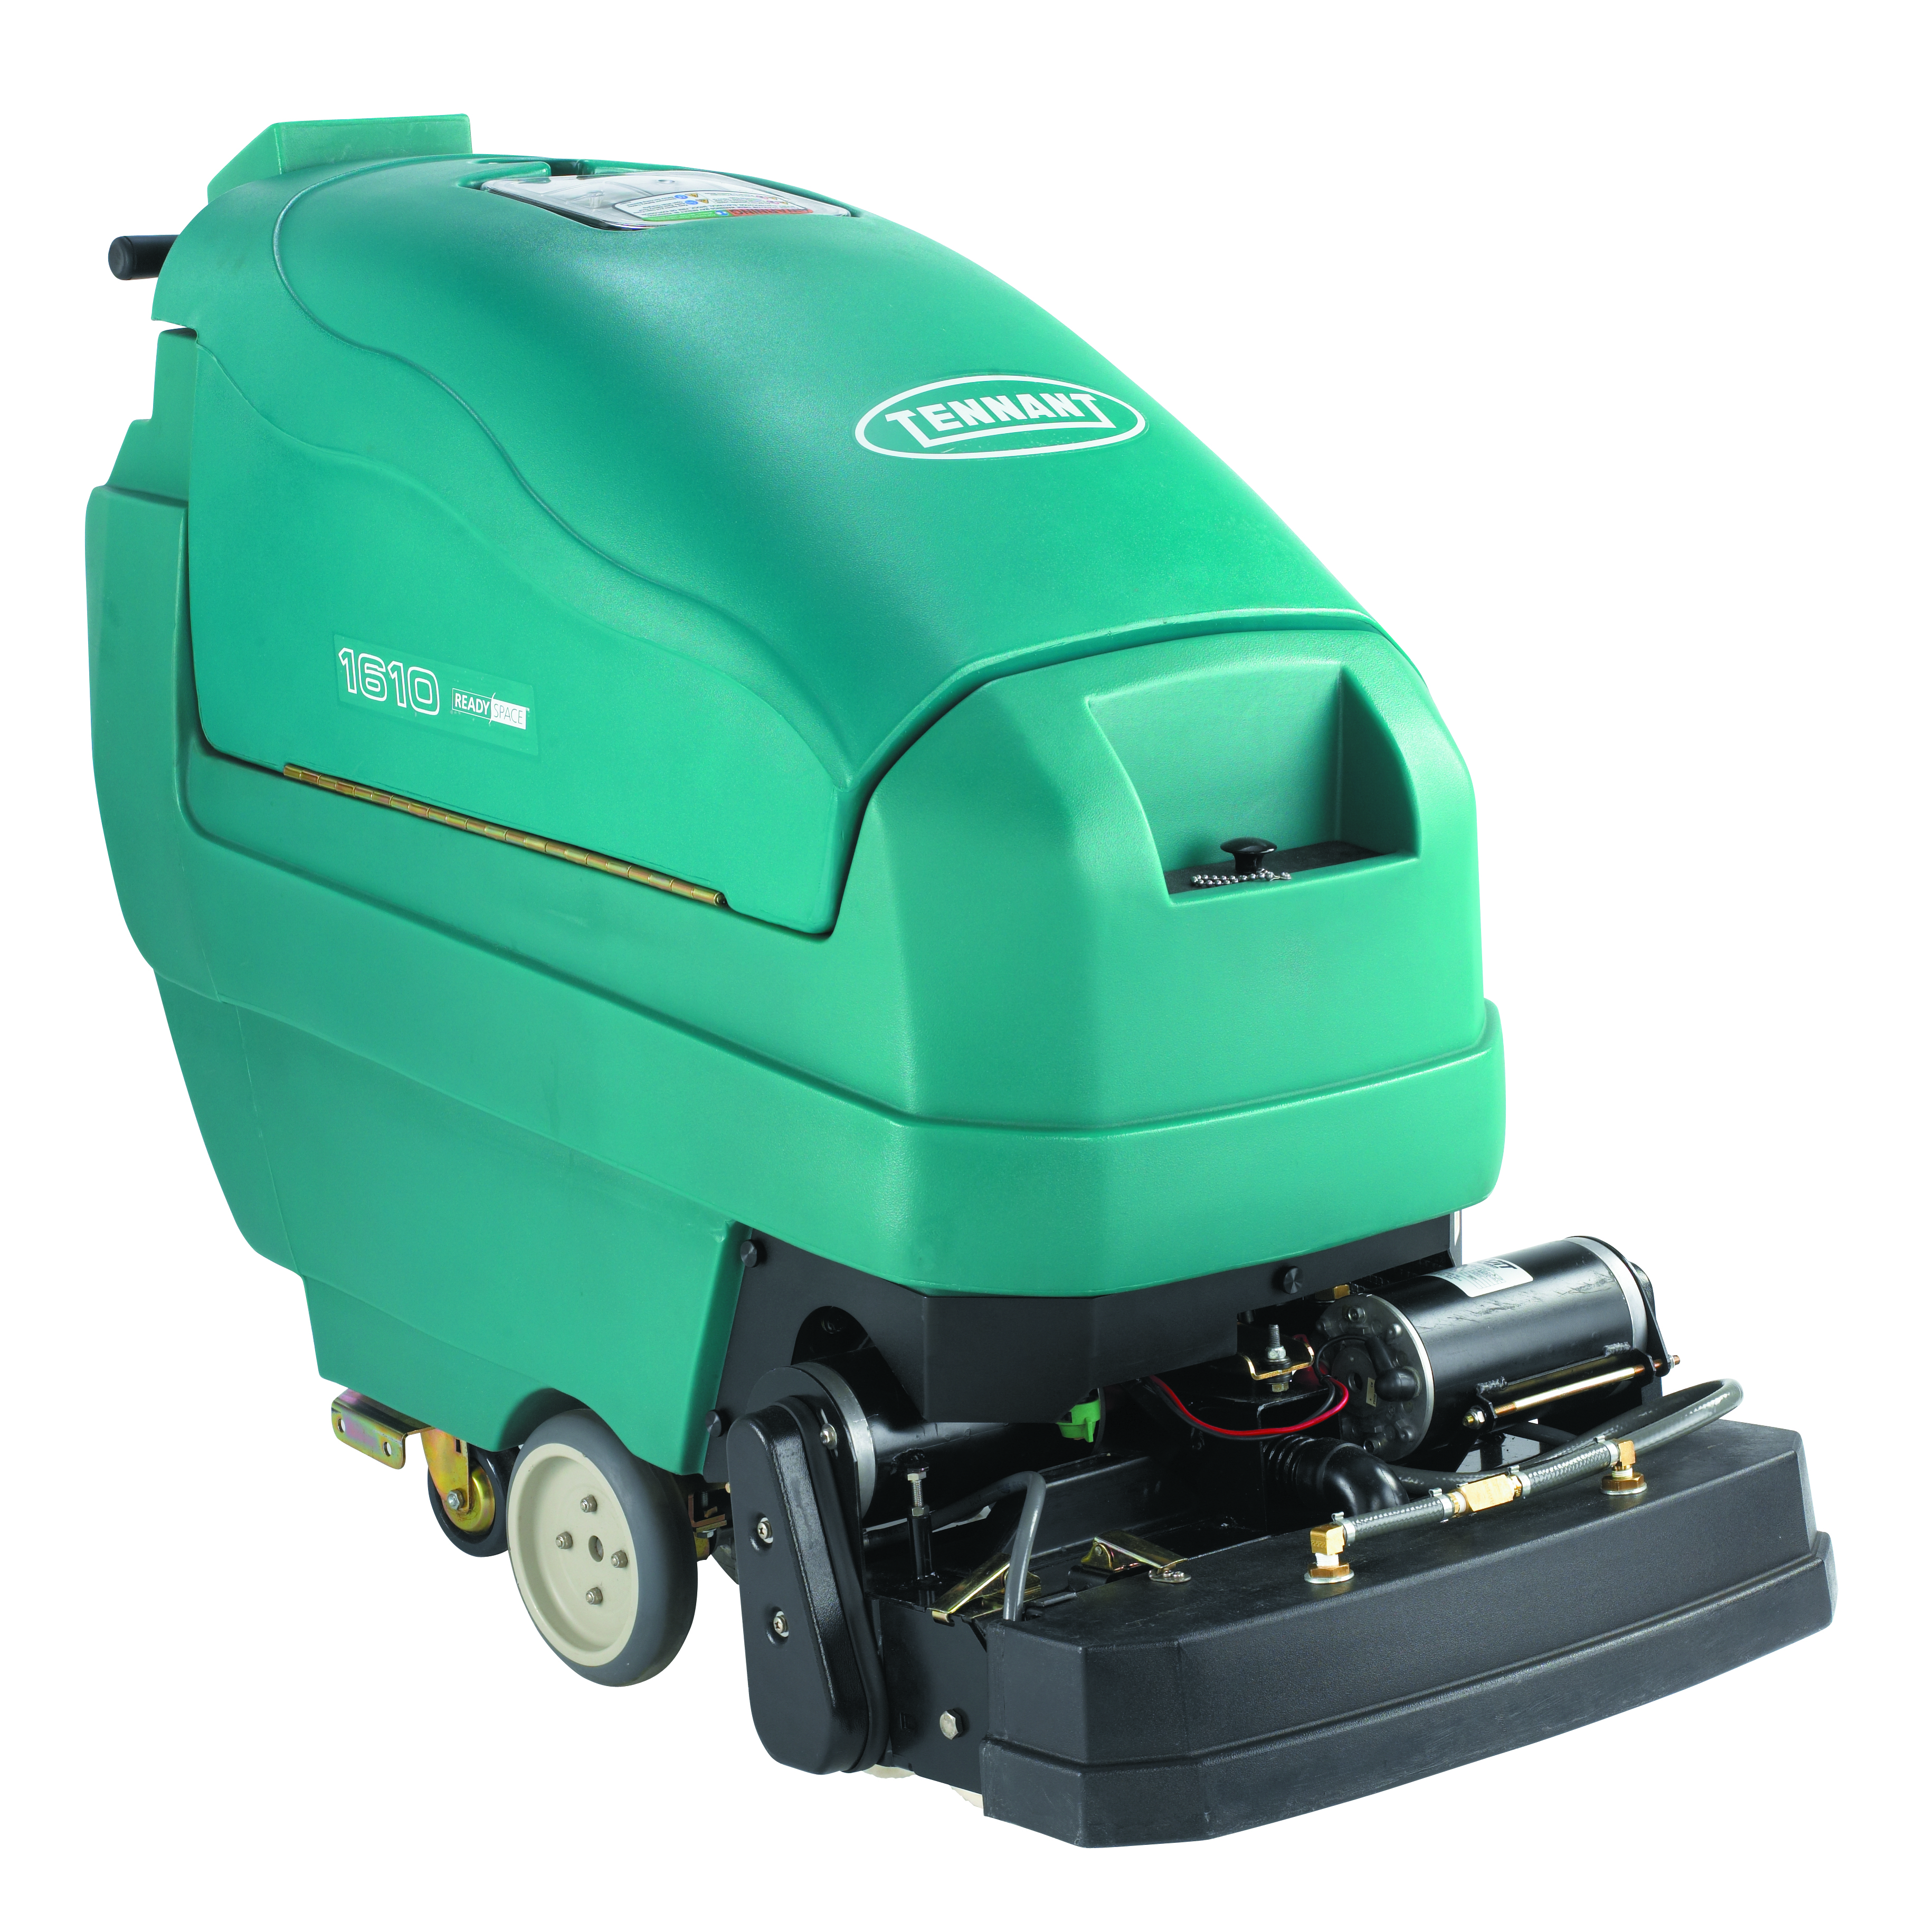 Tennant 1610 Self Contained Carpet Cleaner Clemas